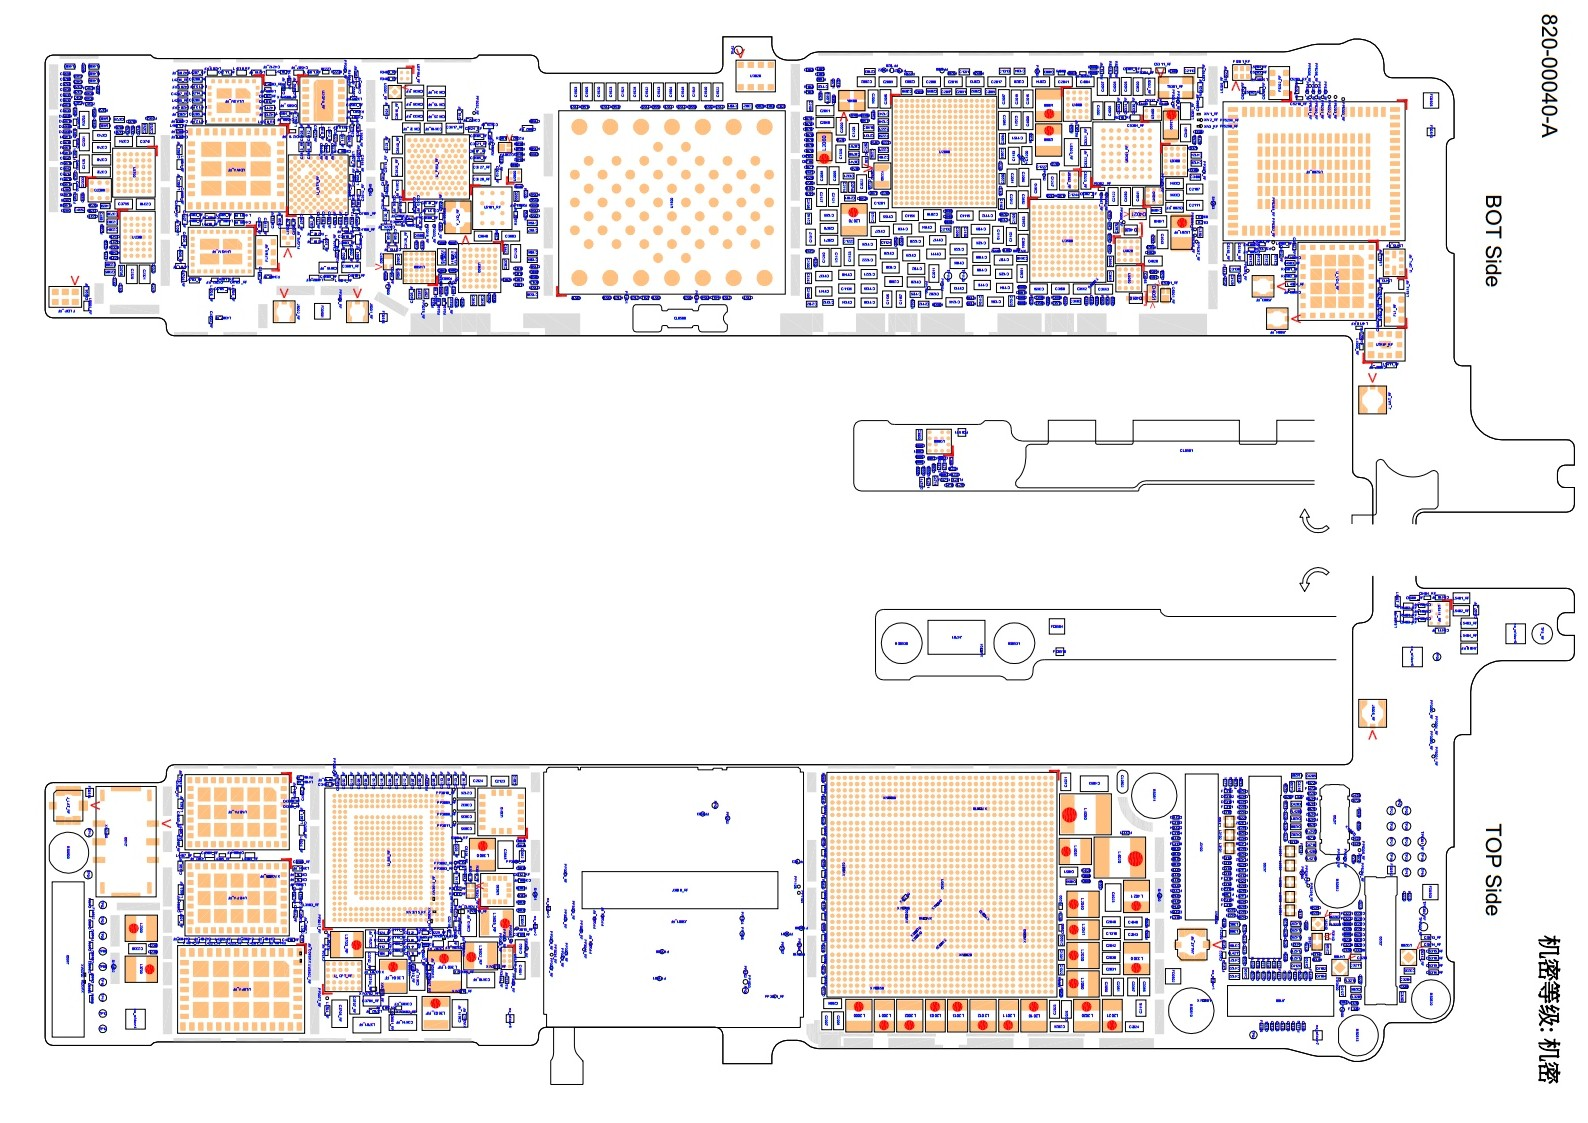 2012 10 01 archive additionally Iphone 4s Motherboard Diagram besides Photos Of Bare Iphone 5s Logic Board Surface With Space For Larger Main Chip besides Iphone 6s Plus N66 Schematic And Boardview moreover Diagram Of Next Iphones Internals Puts Leaked Parts In Context. on iphone 5 logic board schematic